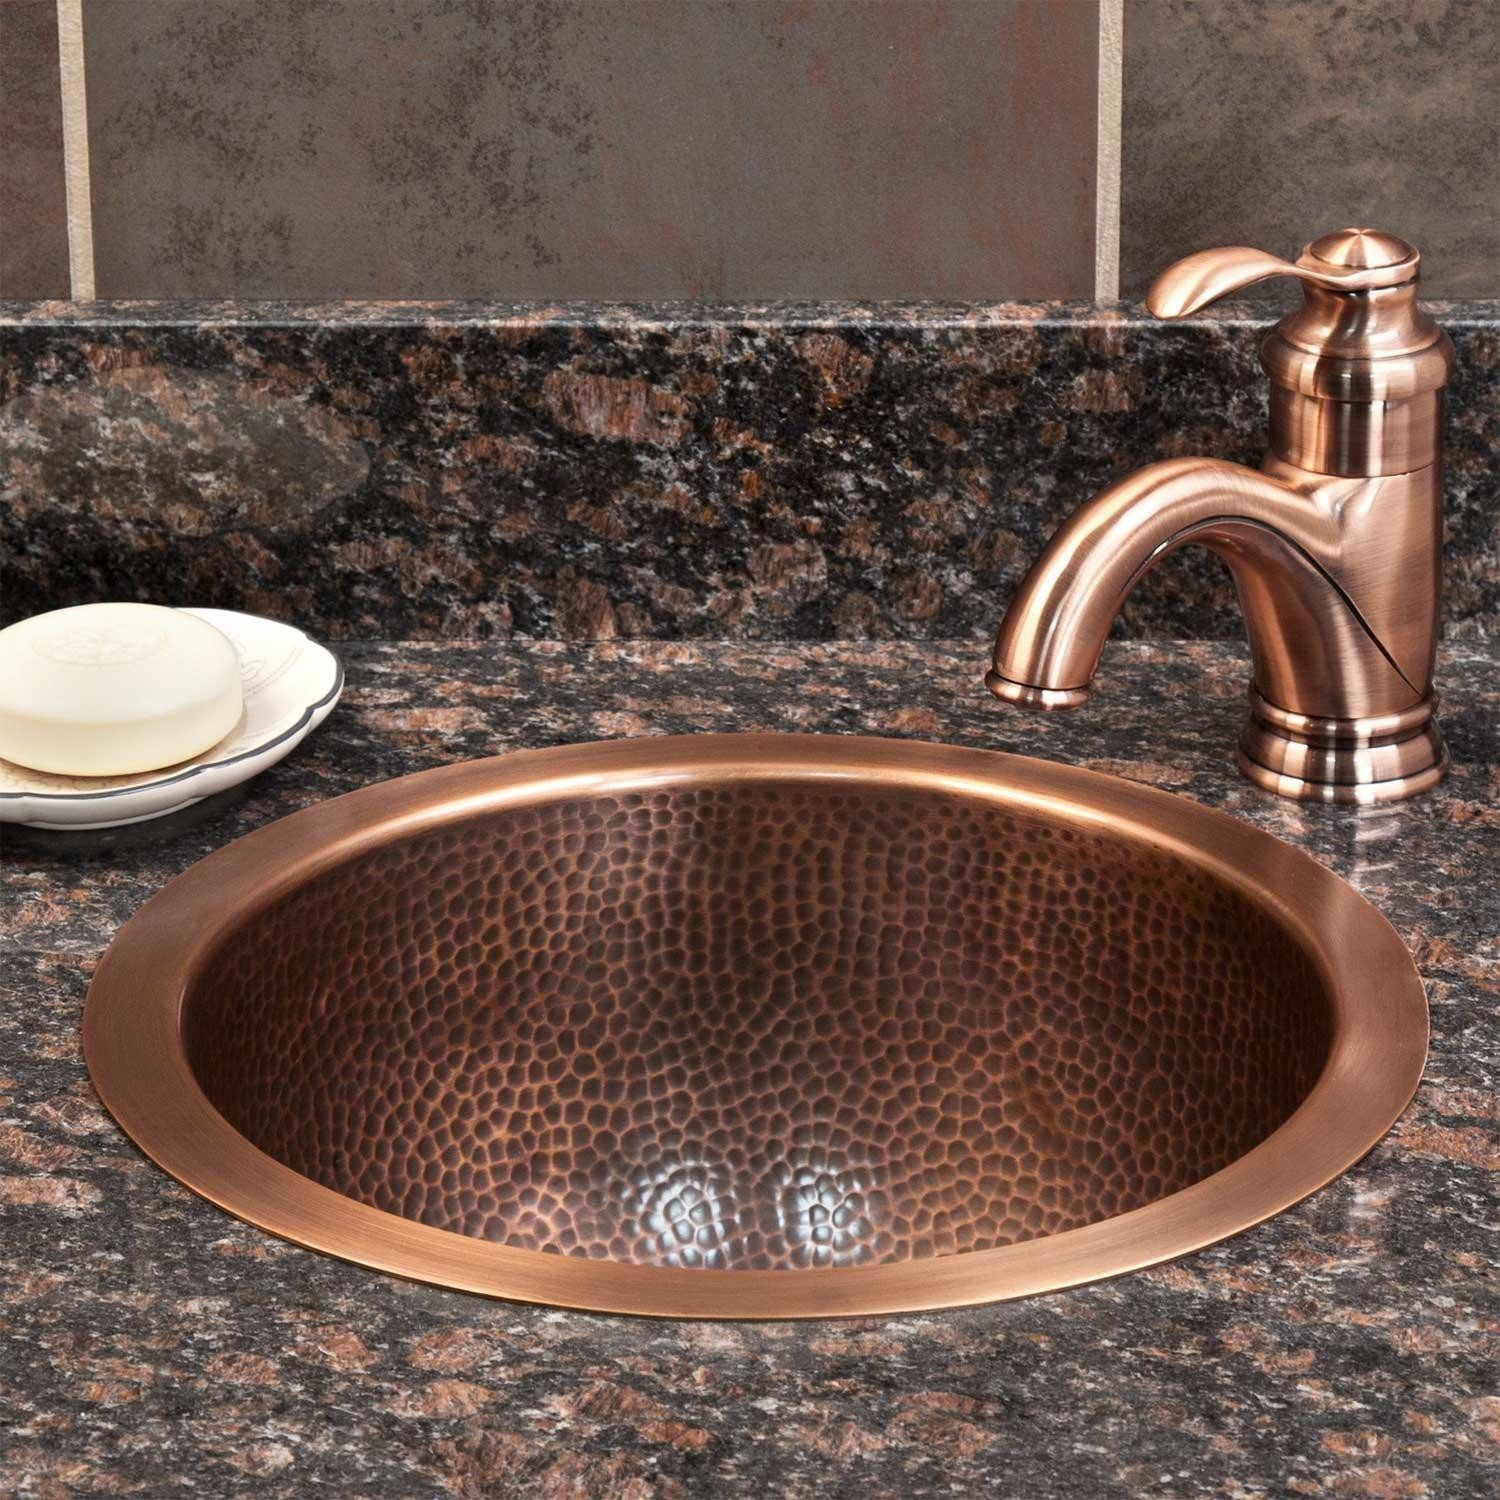 Copper Bathroom Sinks Amazing Baina Extra Deep Round Hammered Copper Sink Bathroom Picture